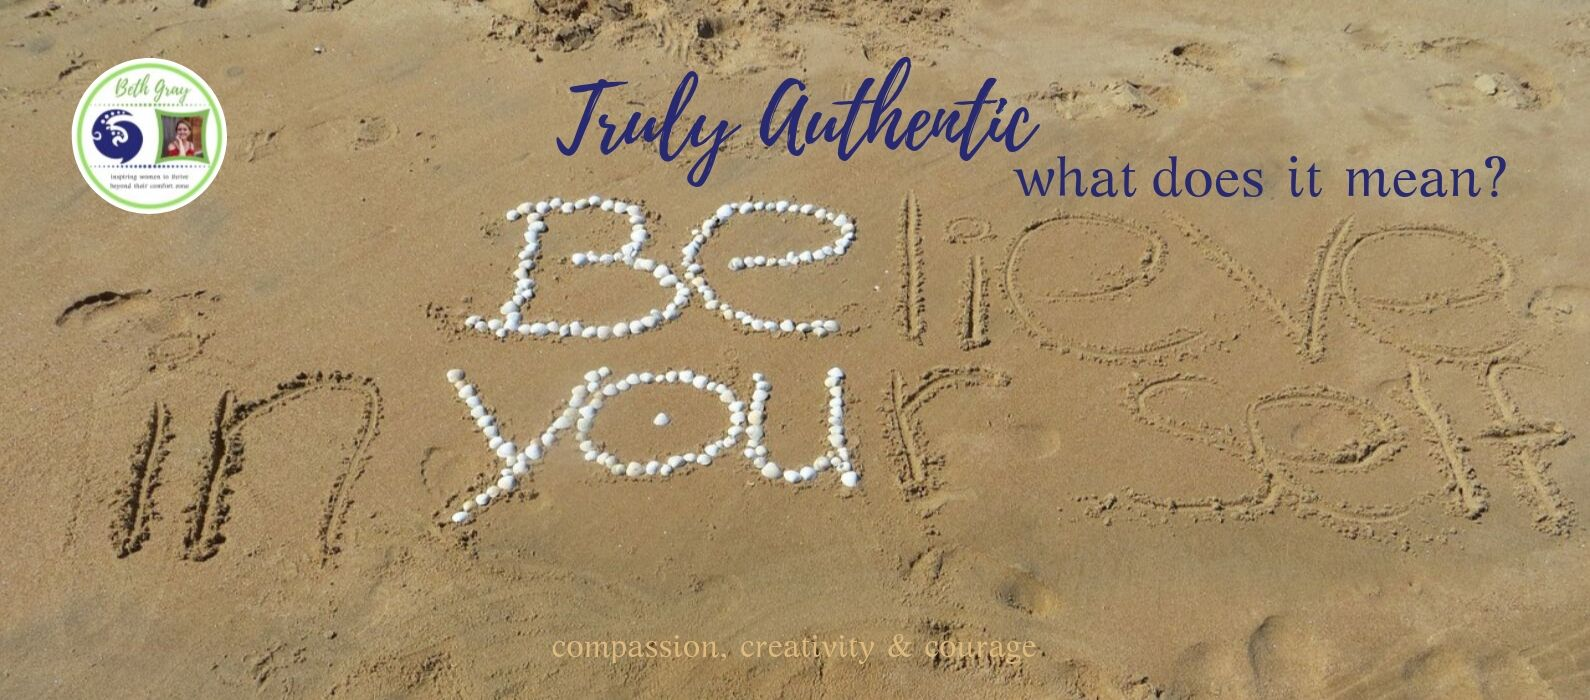 truly authentic, inner wisdom, great leadership, personal development, authentically you, coach speak, coaching jargon, examples of being authentic, authentic person, authentic people, demonstrate real authenticity, genuine authenticity, too authentic, just be yourself, true wisdom, effective leadership, inner happiness, contentment, finding joy, inner peace